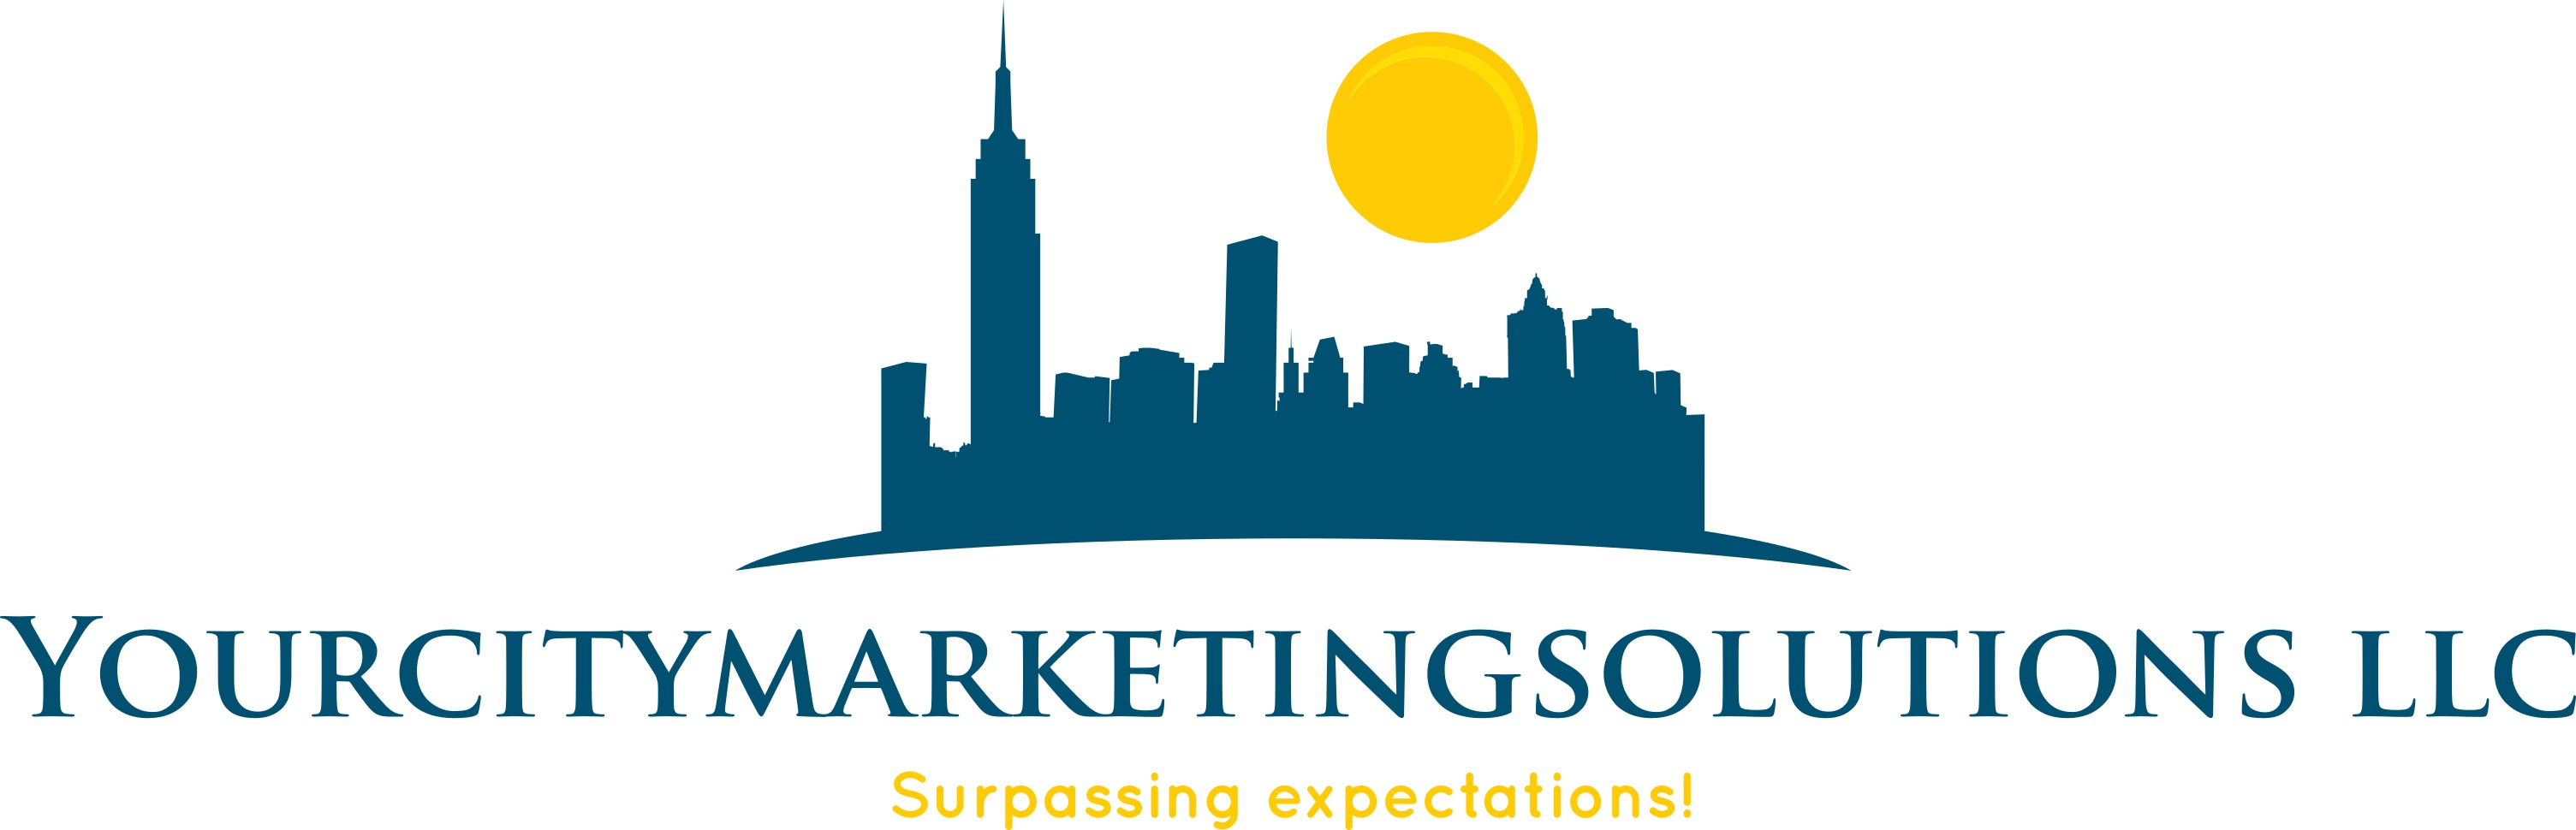 Your City Marketing Solutions LLC, Garden City New York (NY ...